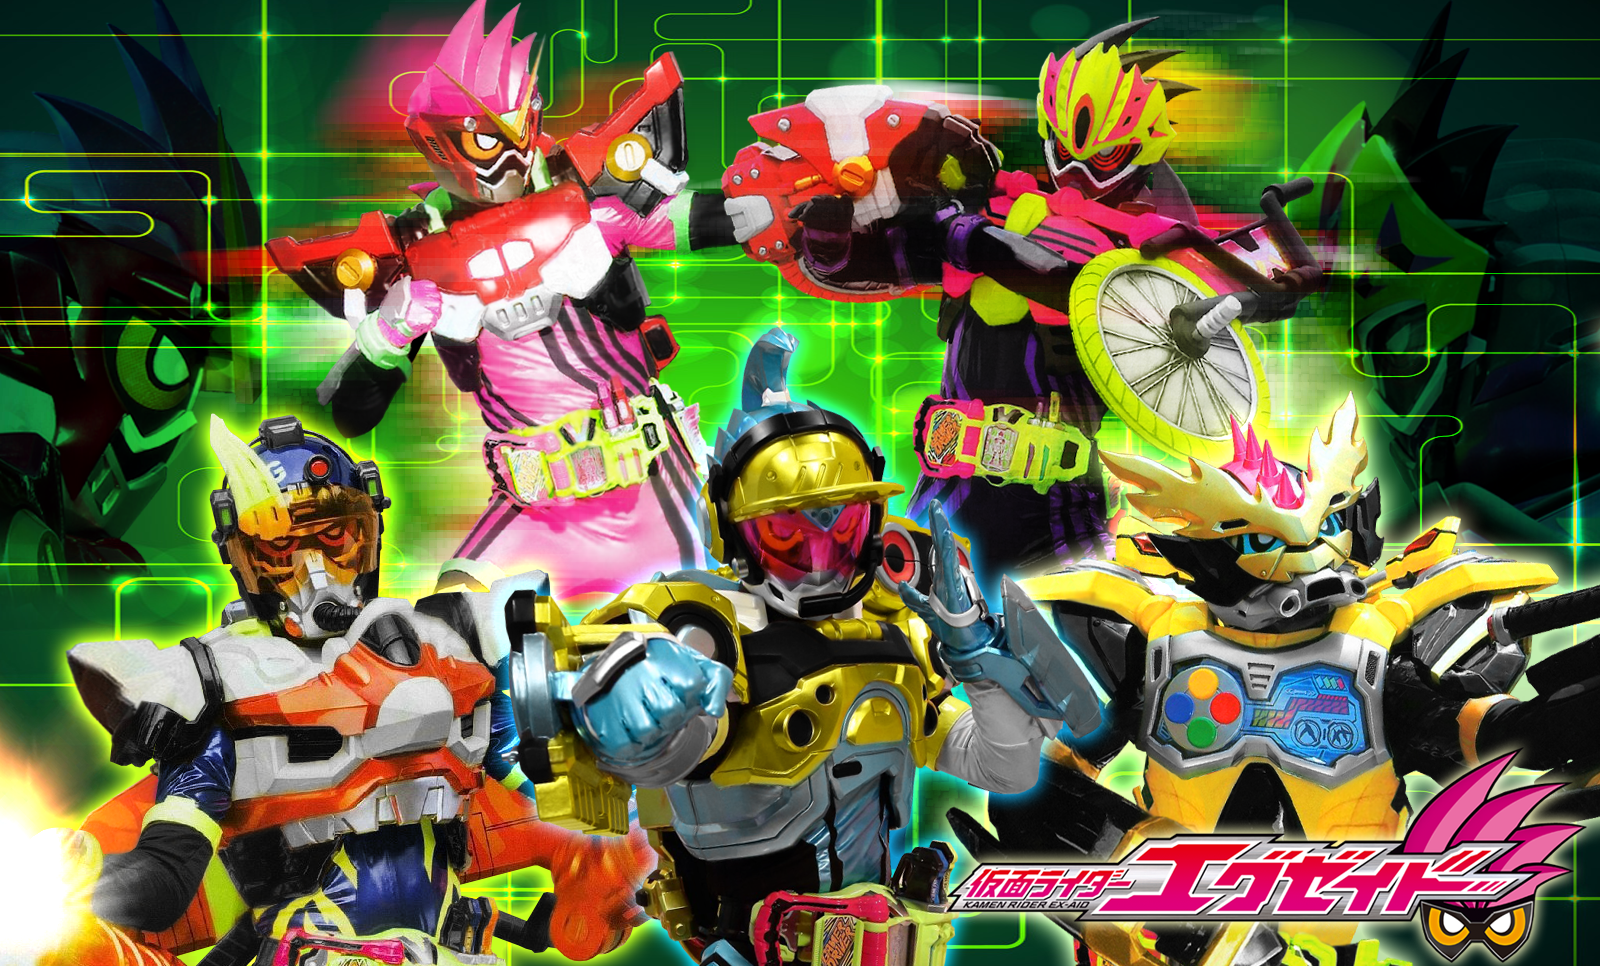 Jefusion Japanese Entertainment Blog The Center Of Tokusatsu Top 10 Best Looking Rider Suits In Ex Aid